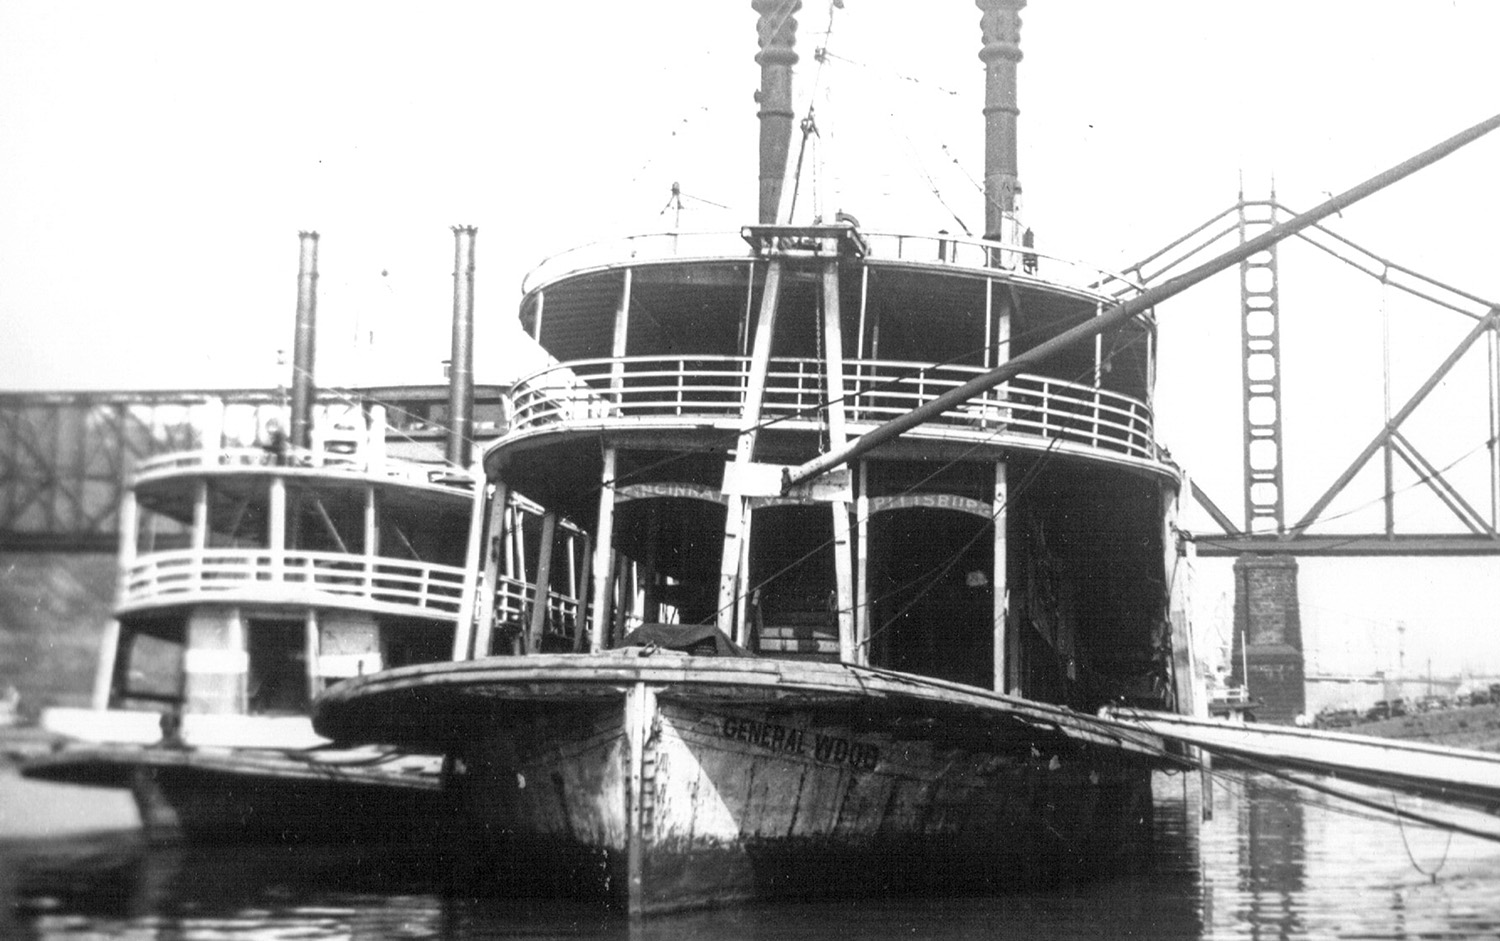 The General Wood and the Helen E. at the Pittsburgh wharf.